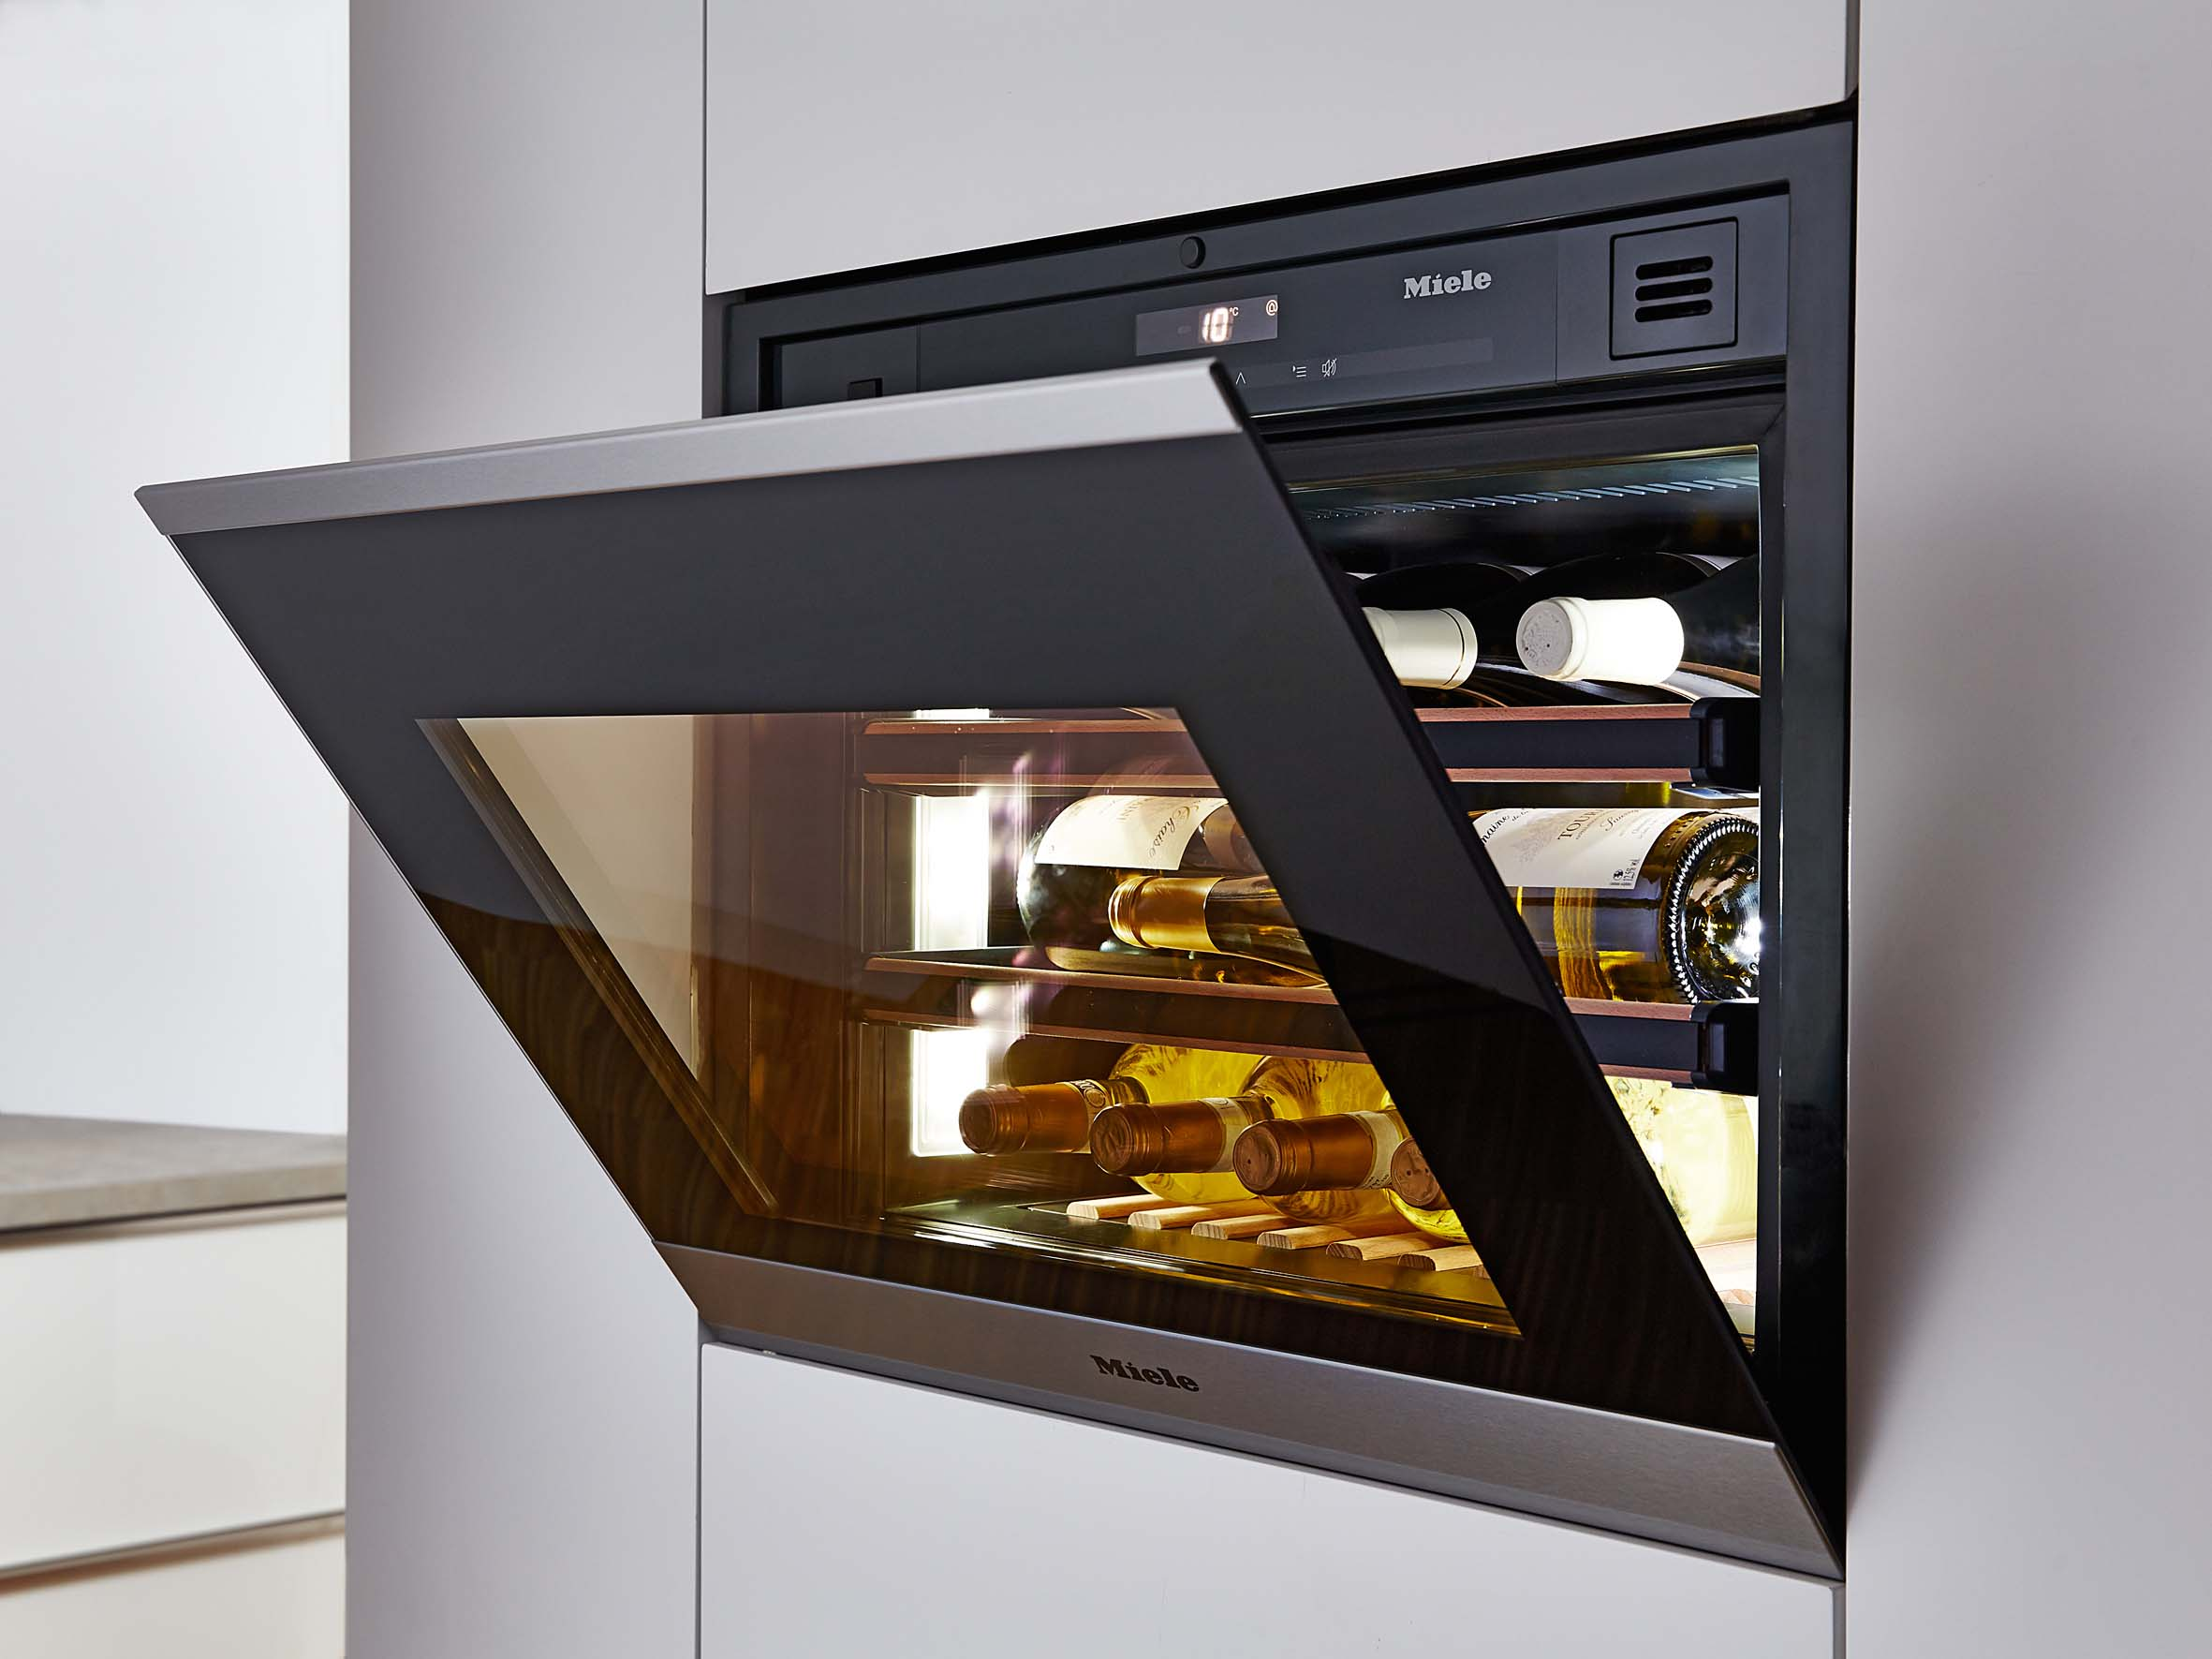 Miele KWT 6112 iG ed/cs Built-in Wine Conditioning Unit